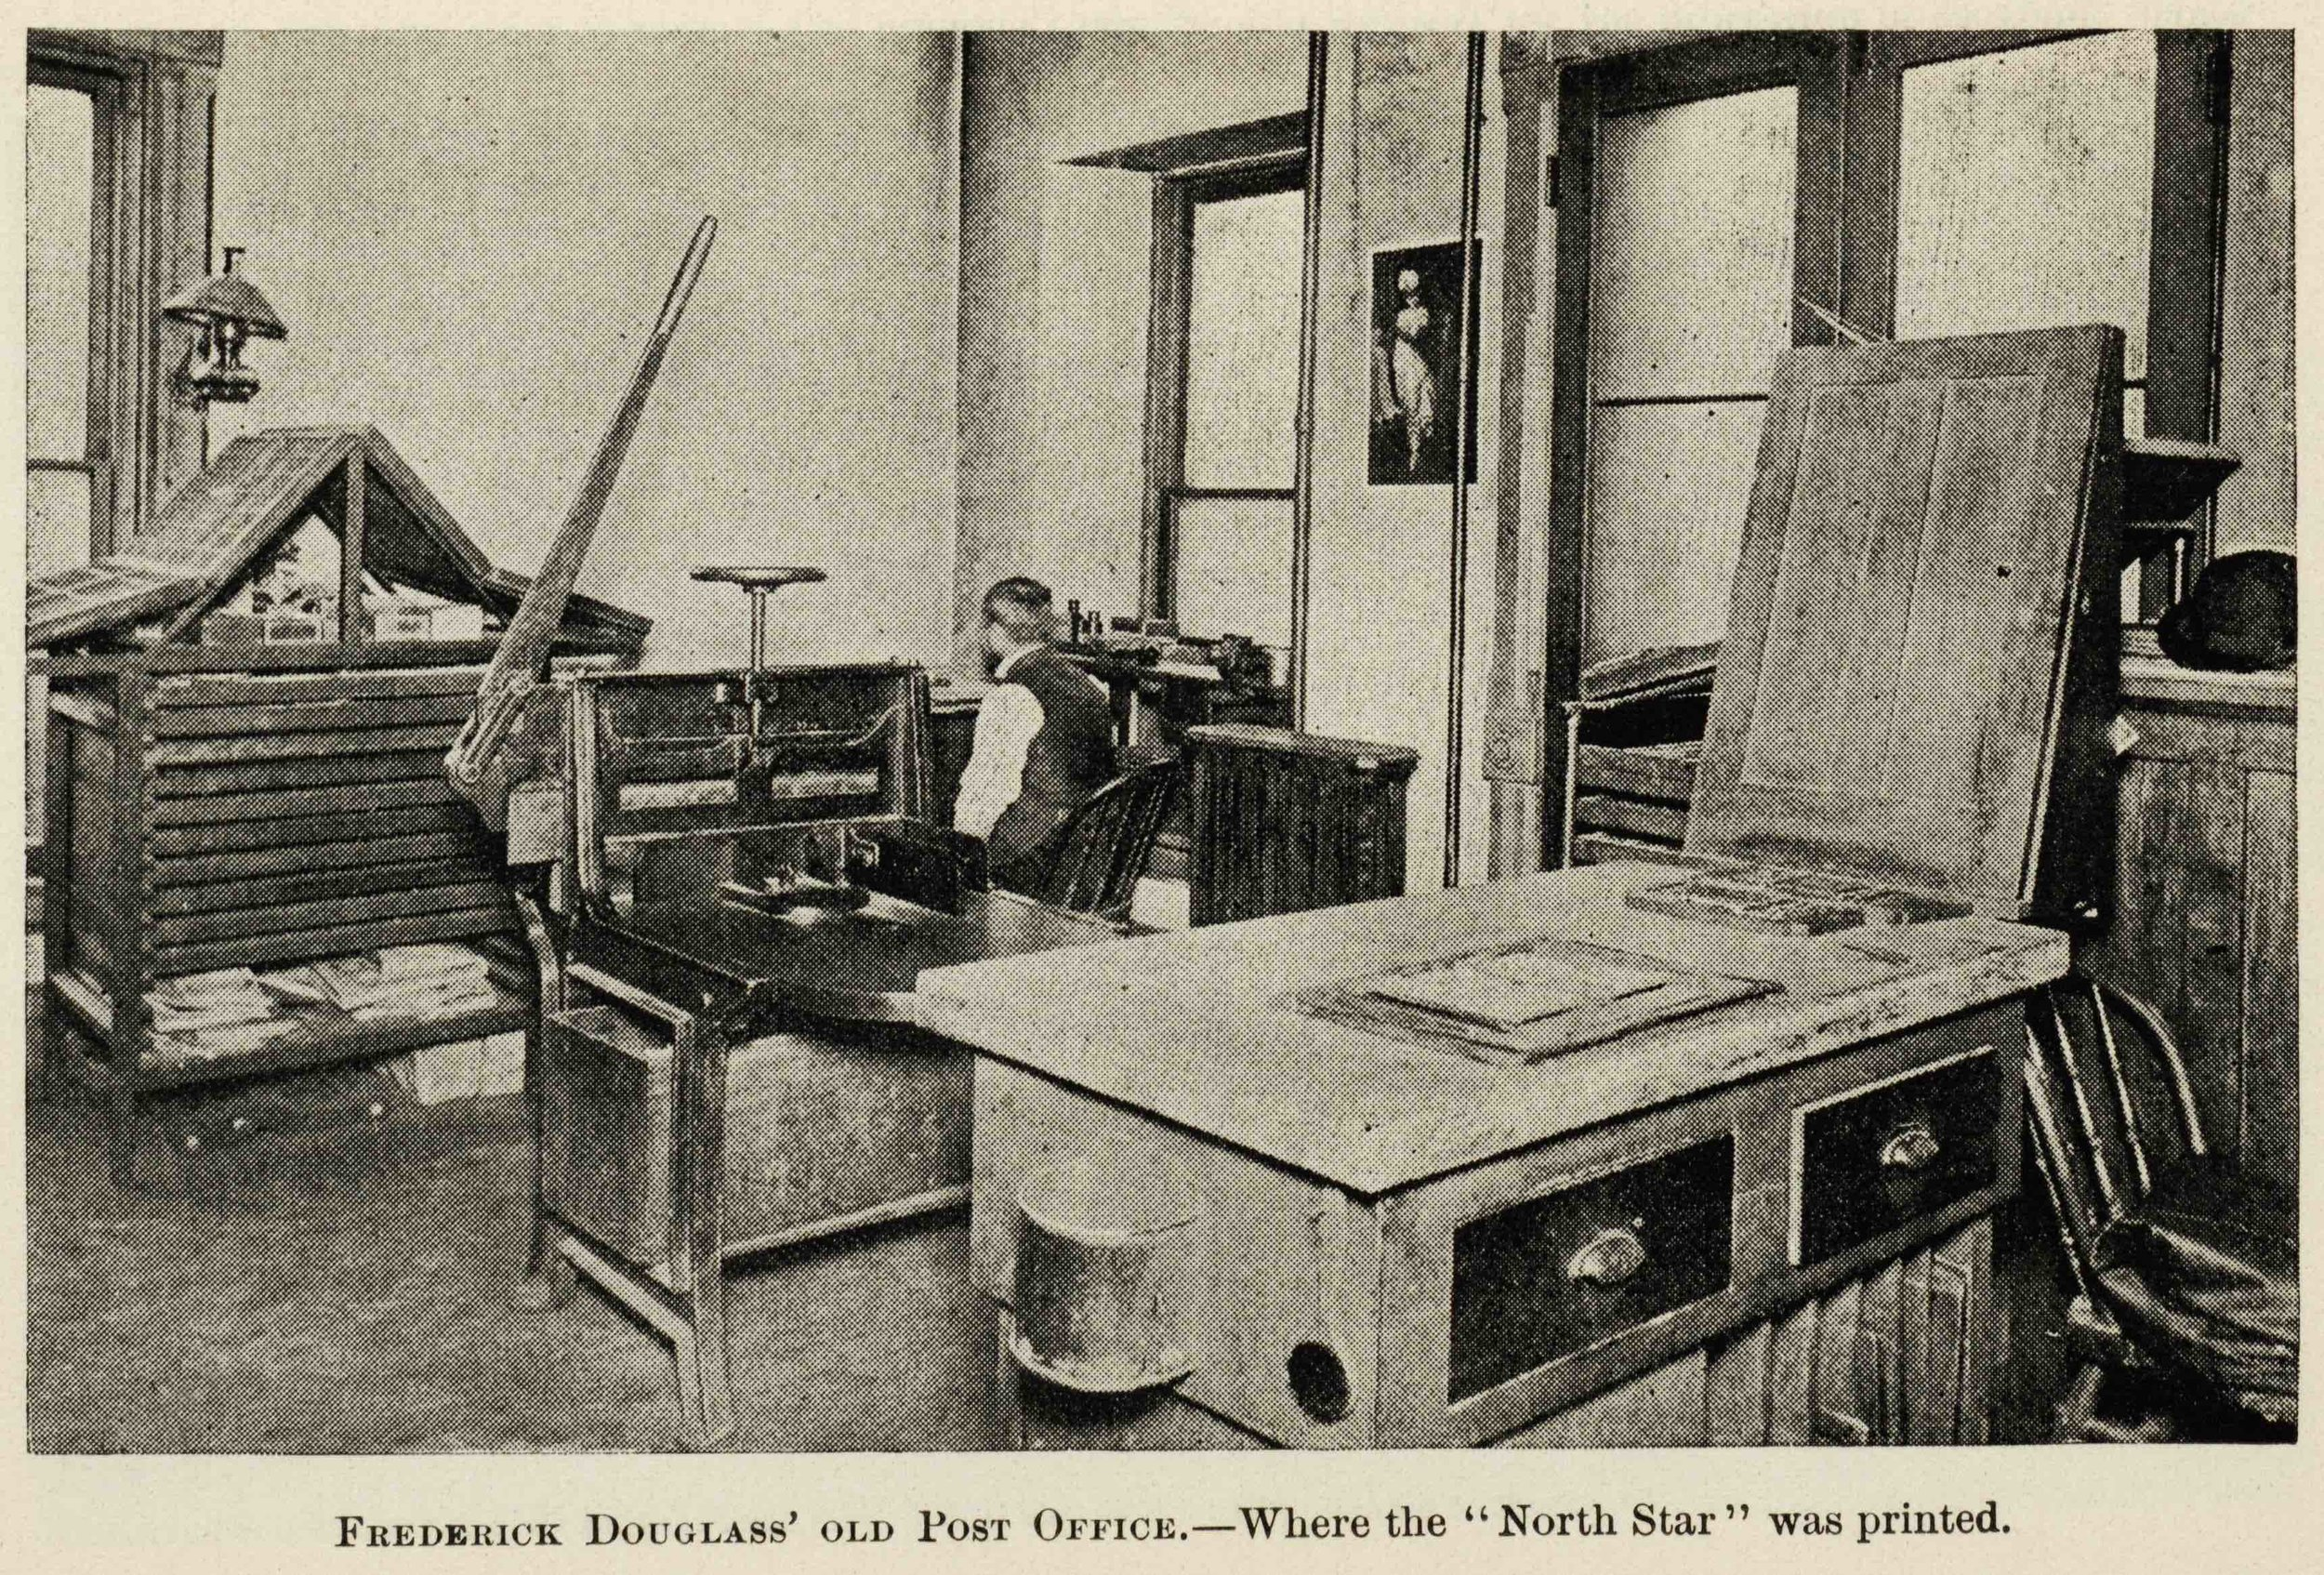 Photo of North Star office, 1893 (after publication ceased), Rochester Public Library Local History Division